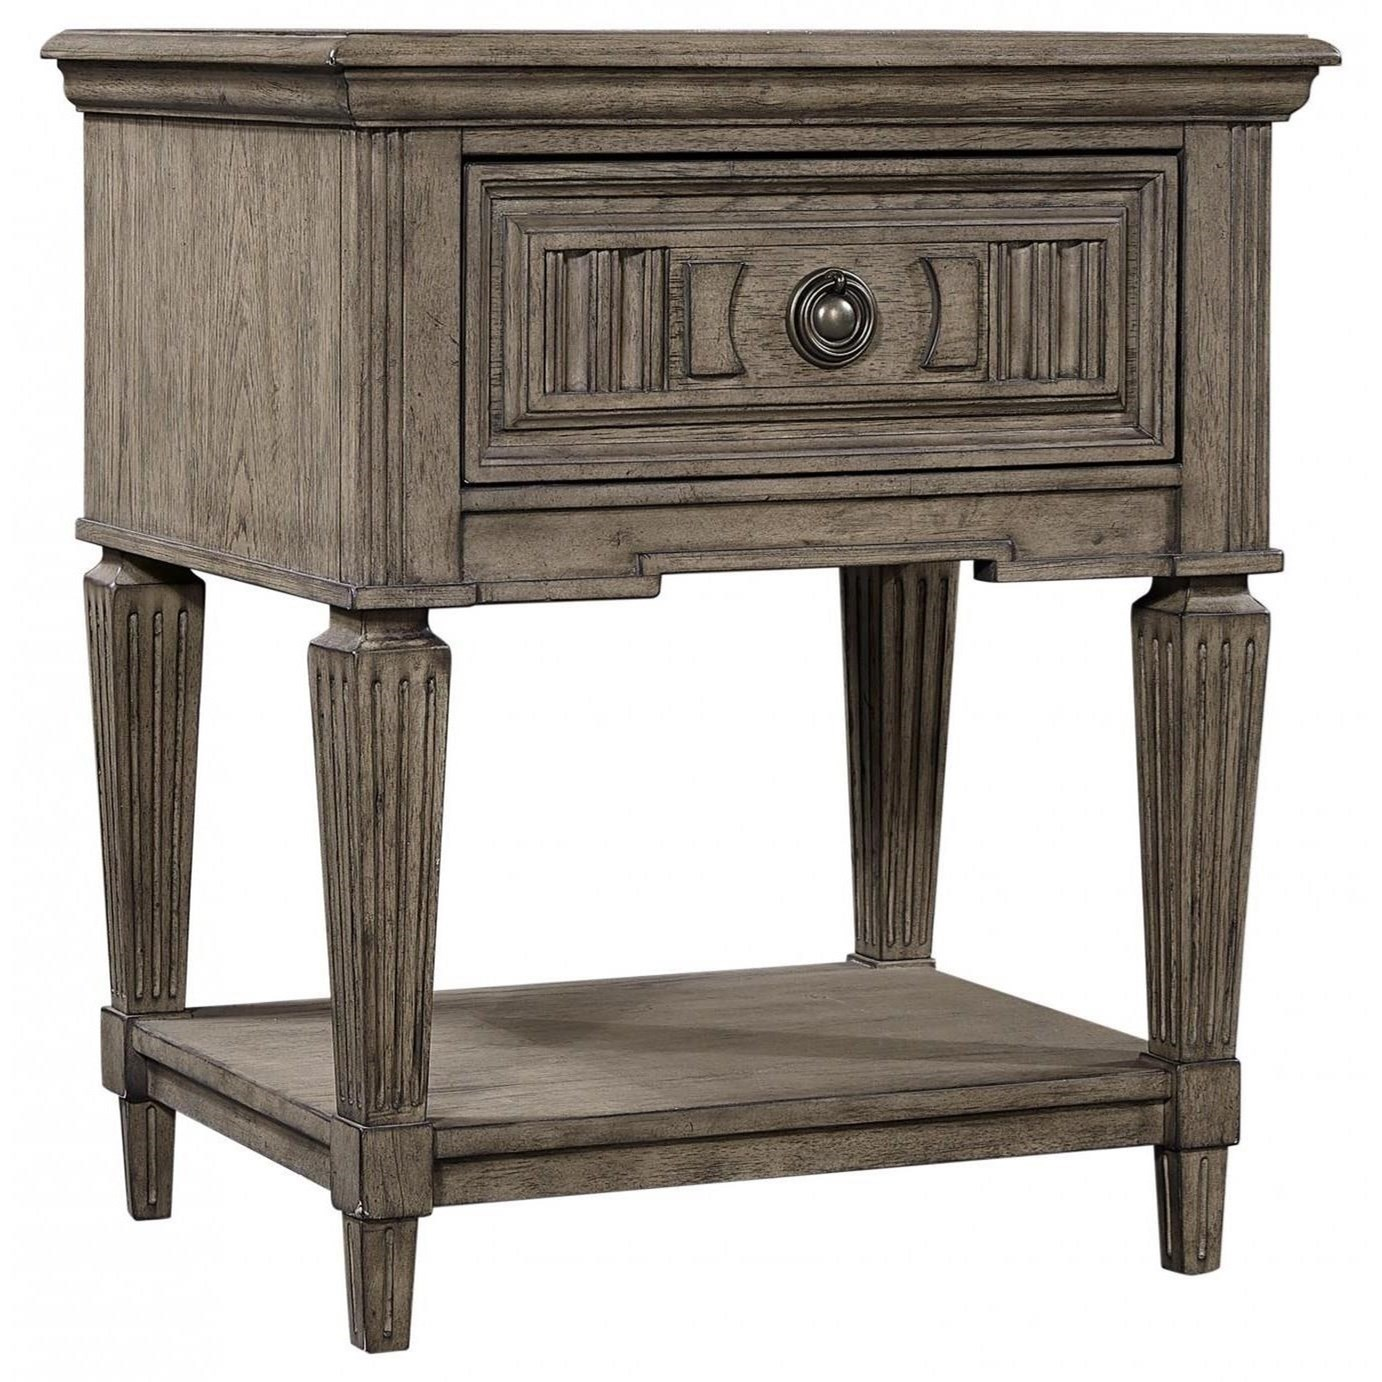 Strasbourg 1 Drawer Nightstand by Aspenhome at Walker's Furniture